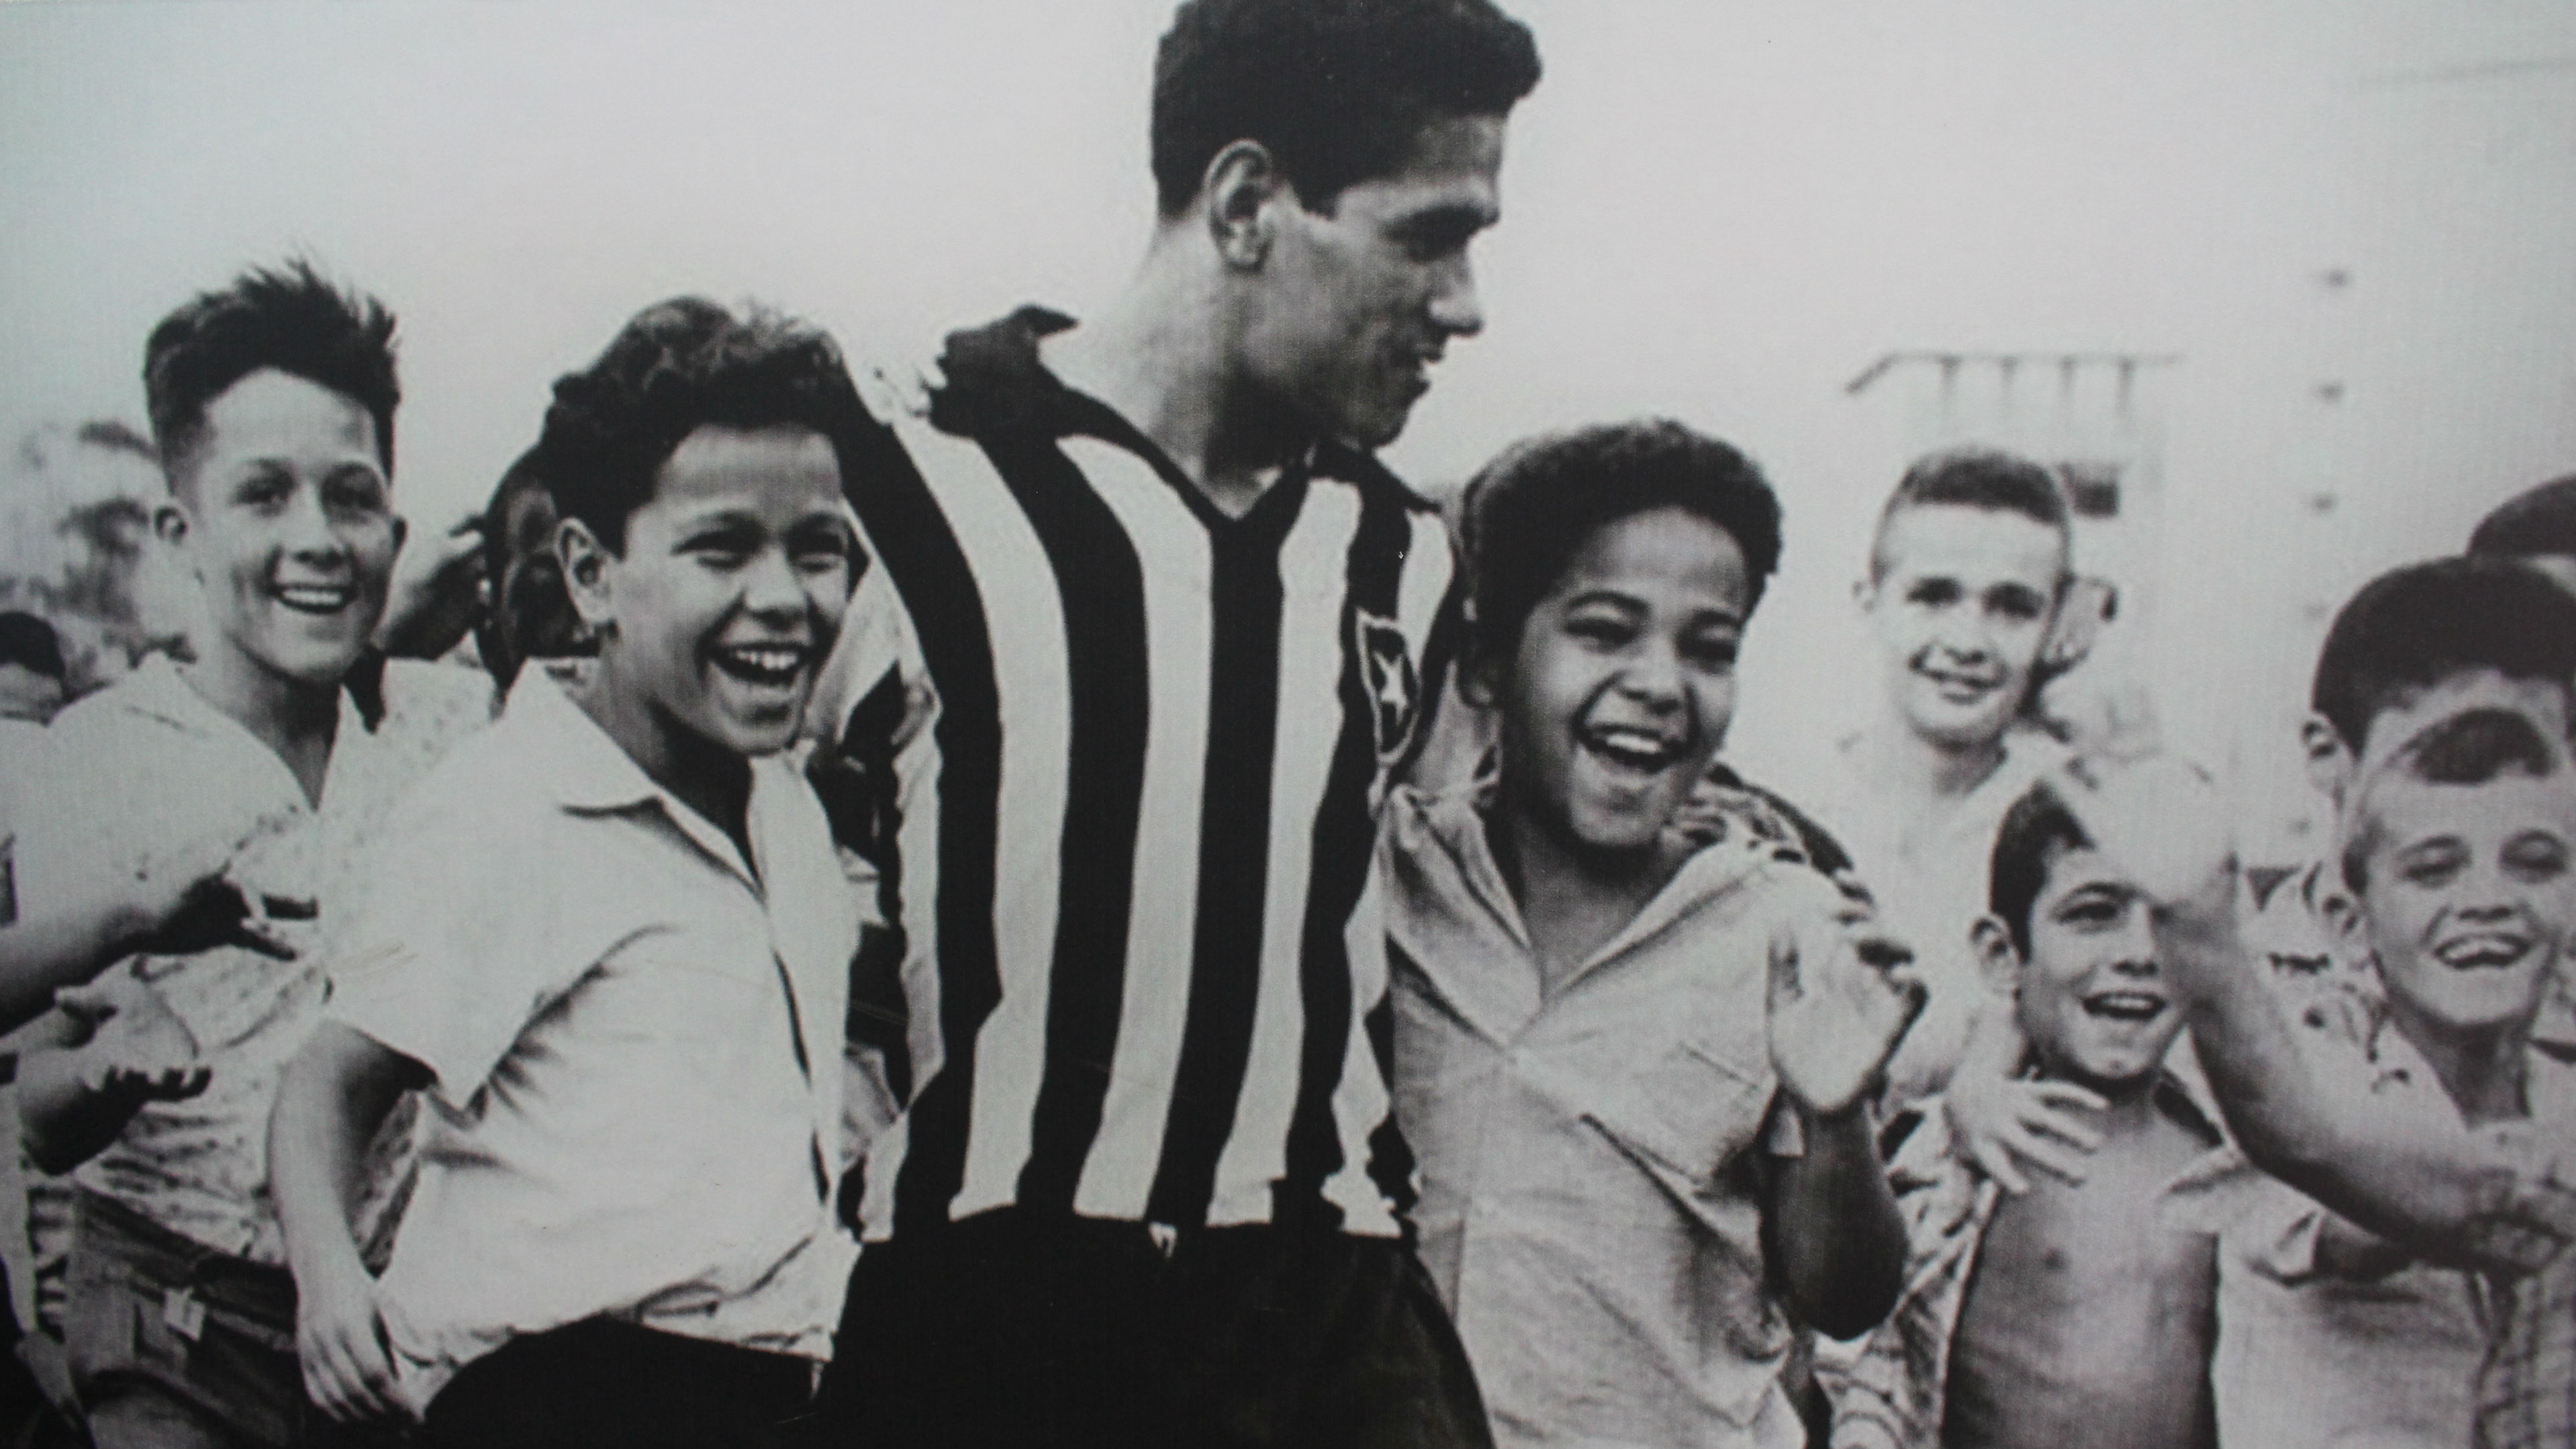 A great myth passed down by generations Garrincha is still missed